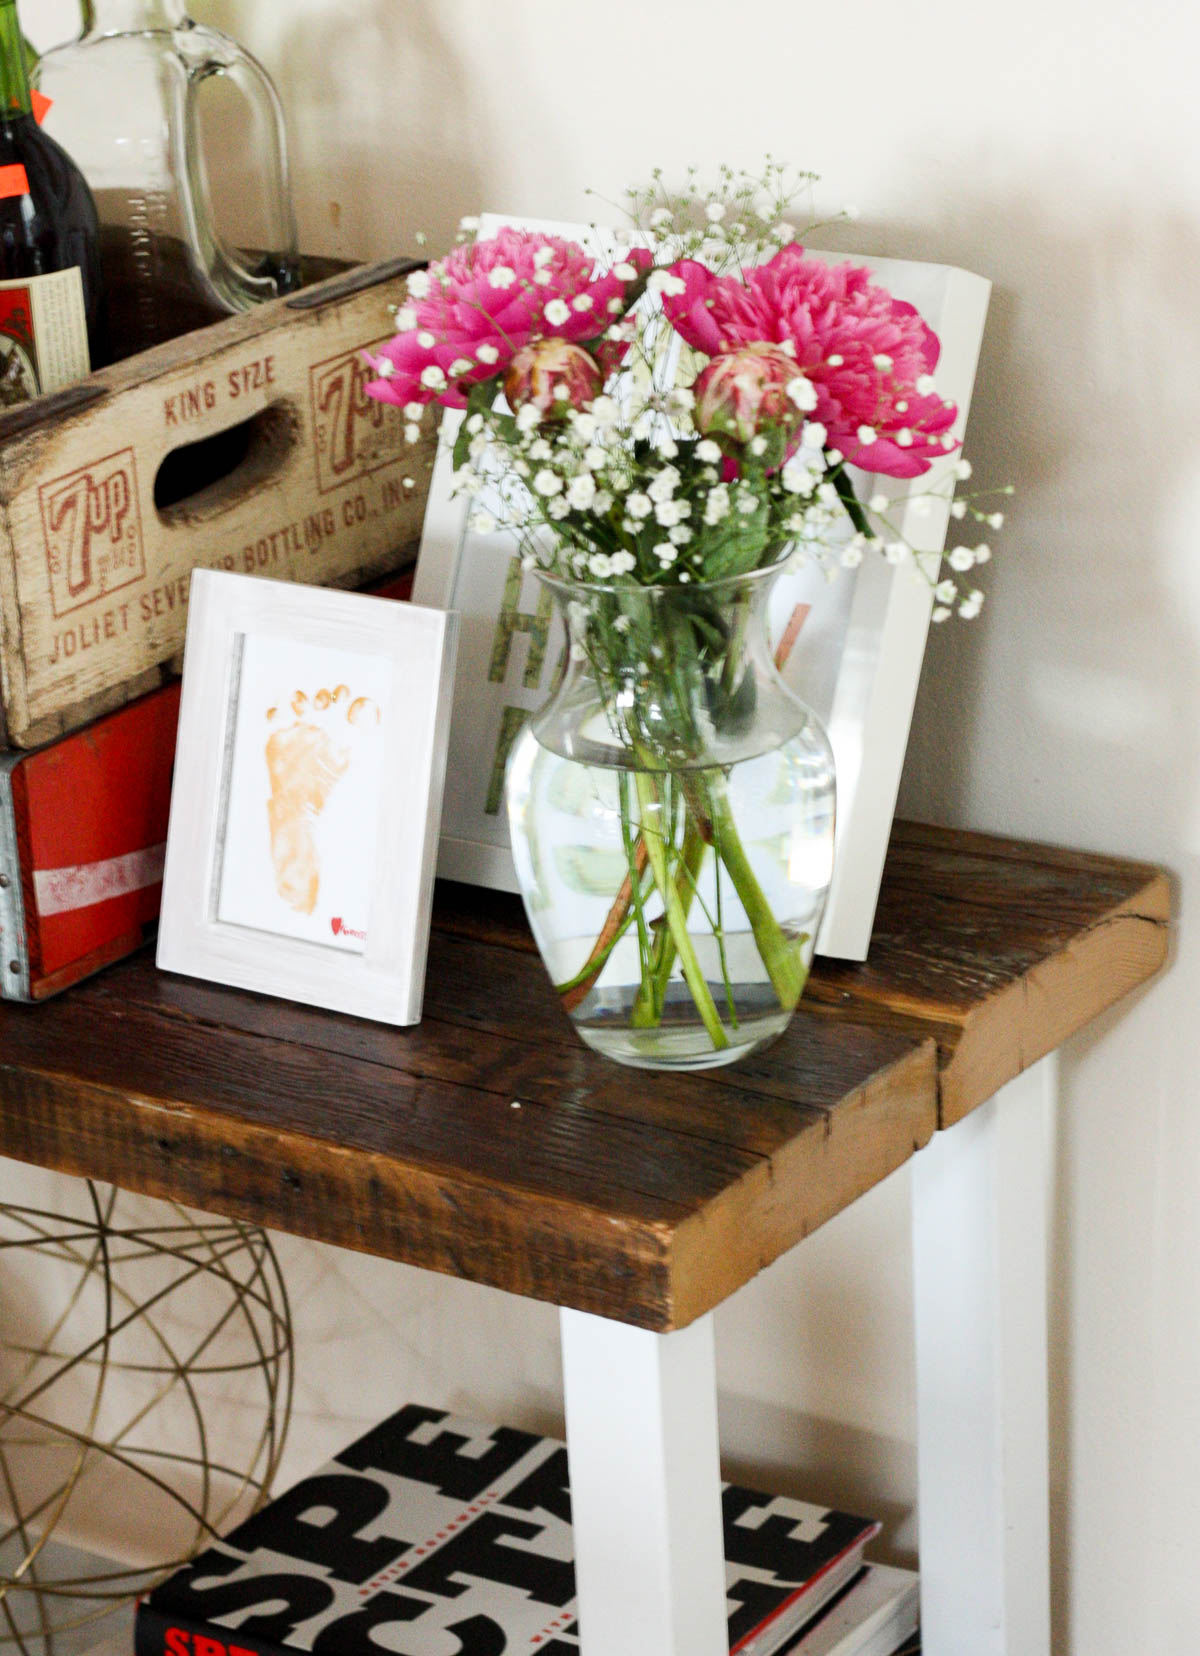 diy-reclaimed-wood-table_how-to-make-a-reclaimed-wood-table-2